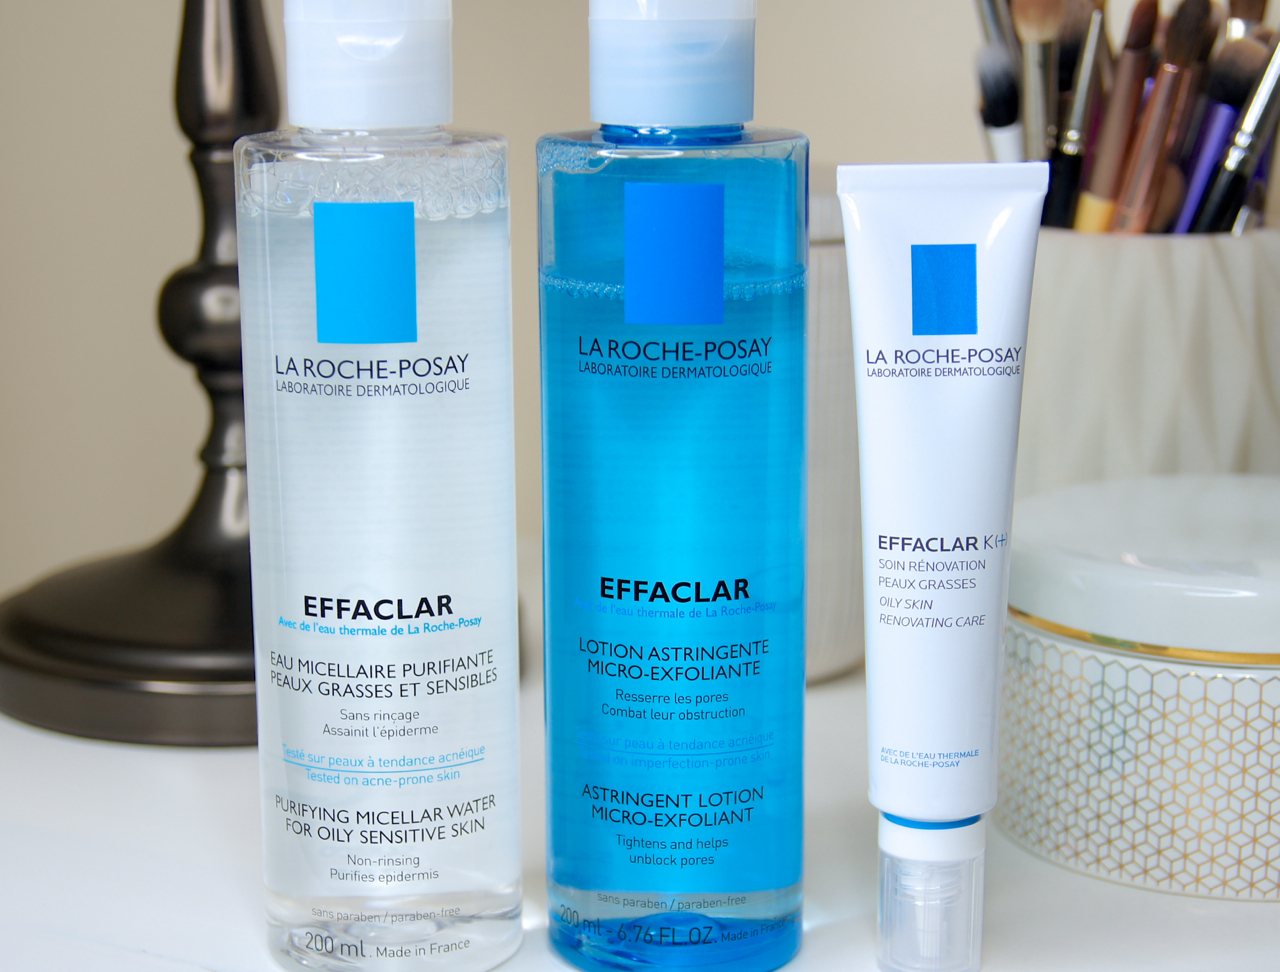 la roche posay effaclar skincare products purifying micellar water clarifying astringent lotion k+ corrective moisturiser review